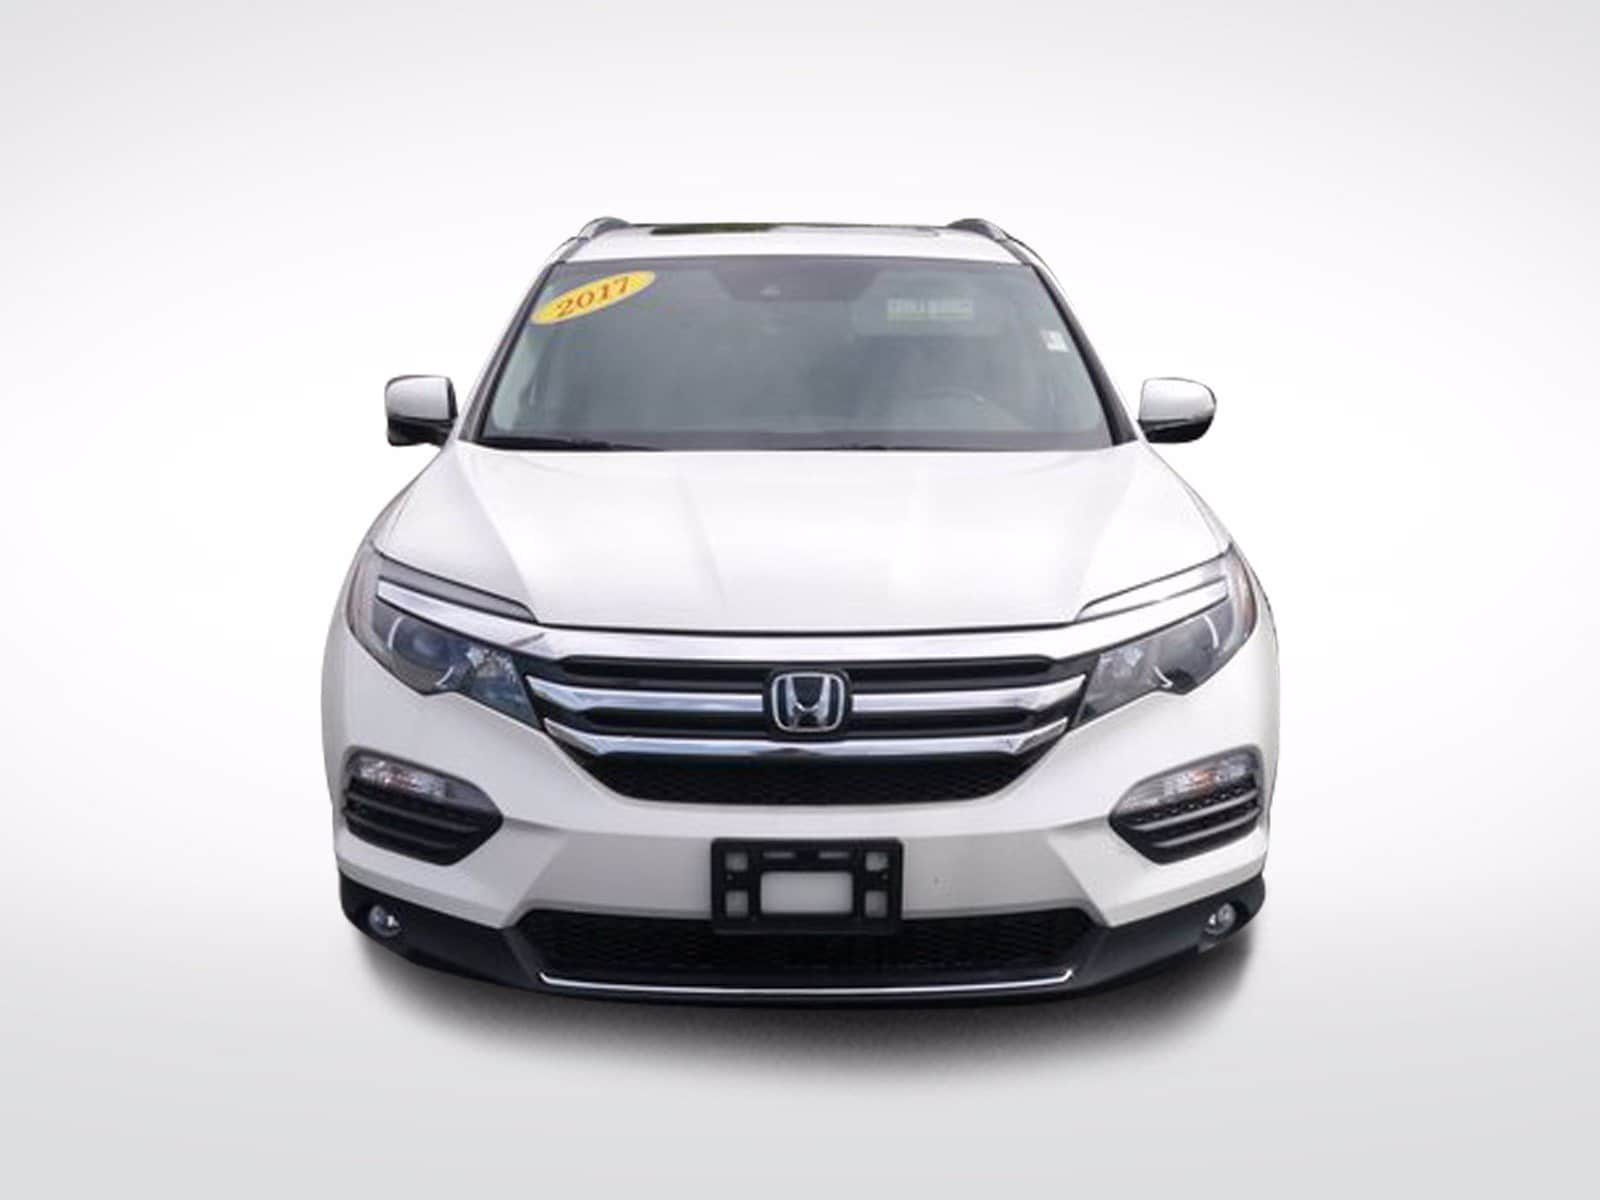 Used 2017 Honda Pilot Touring with VIN 5FNYF6H95HB055130 for sale in Baxter, Minnesota